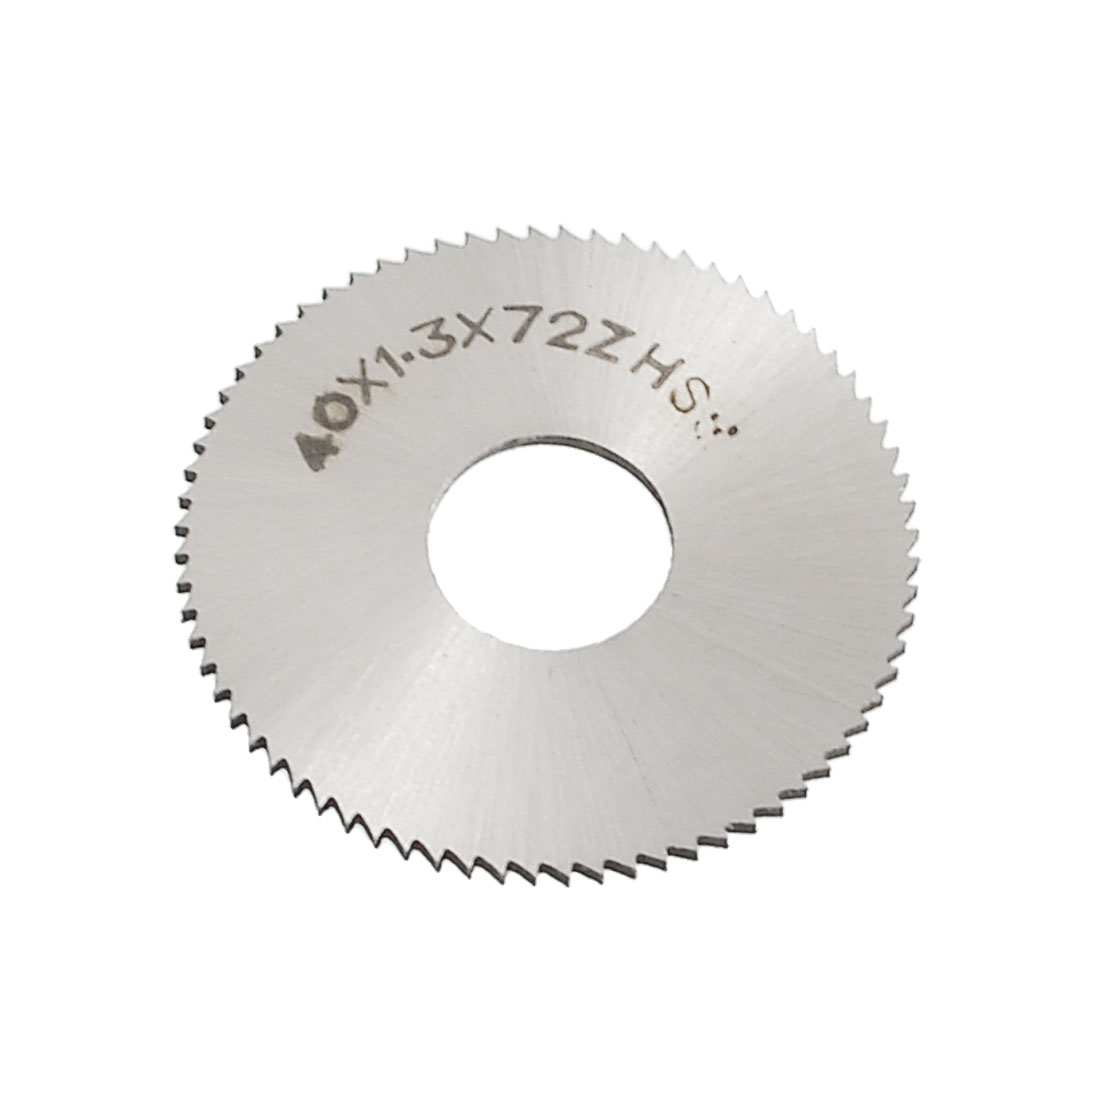 "40mm 1 9/16"" OD 1.3mm Thickness HSS 72T Round Slitting Saw Cutter"